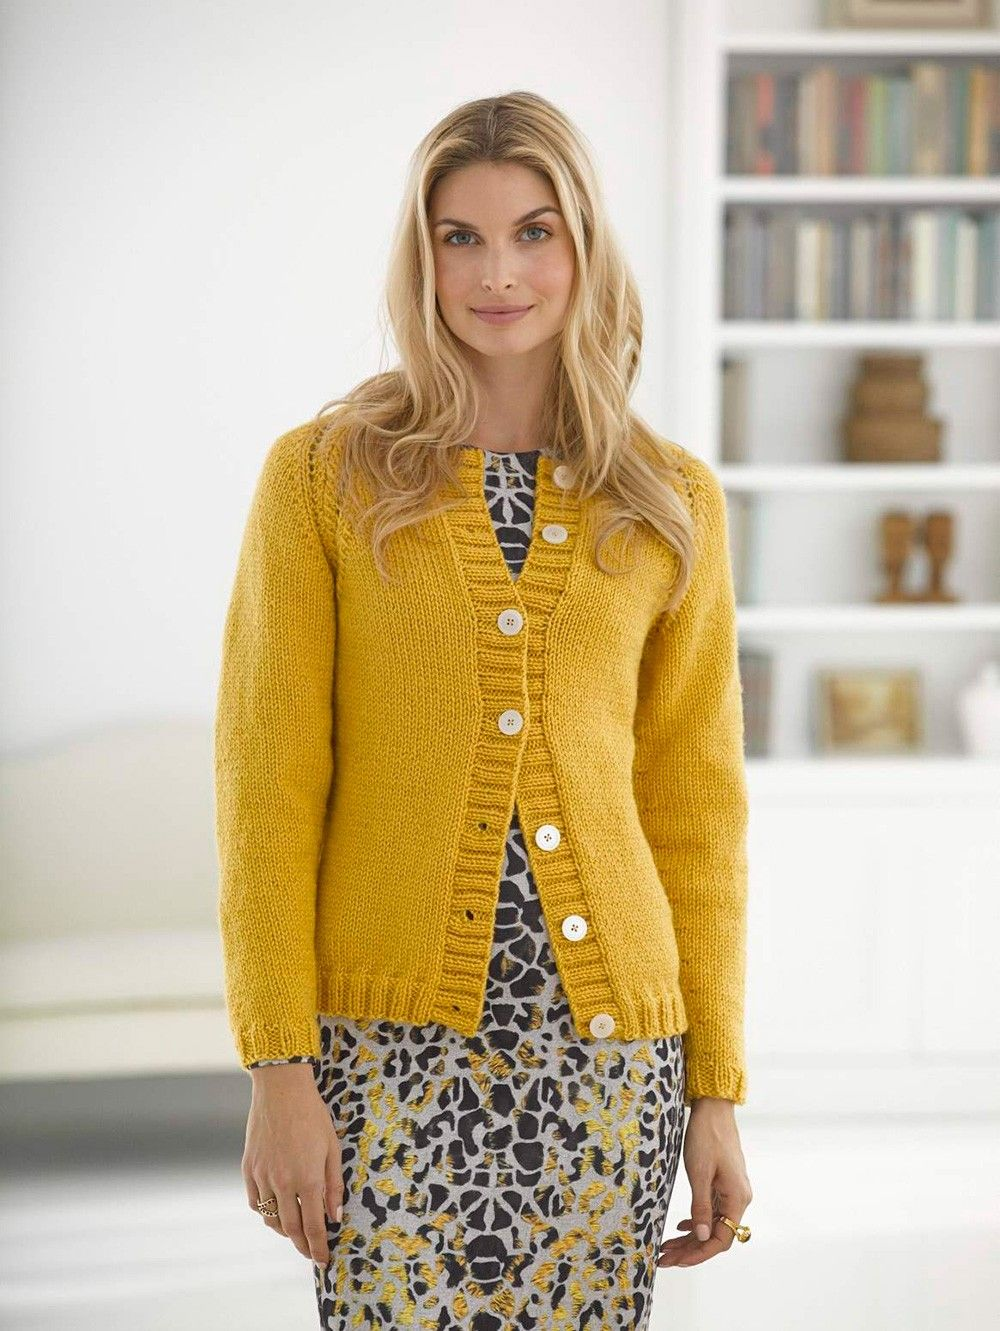 dfd04597e4be Lion Brand 14 Top Patterns Free Aran Knitting Patterns